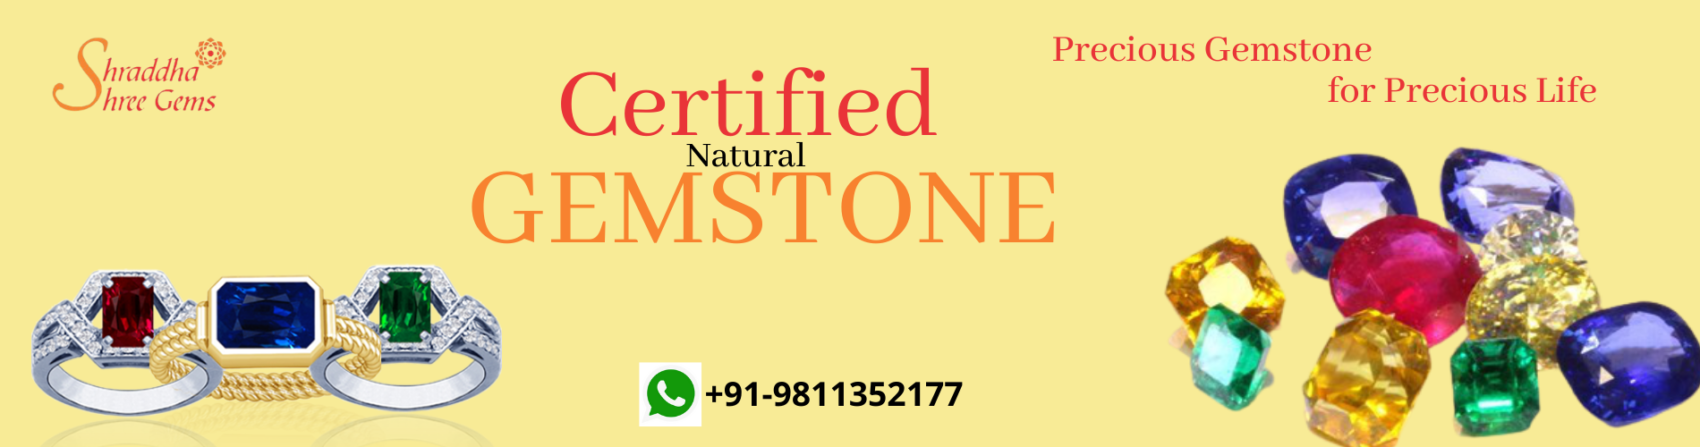 Buy 100% Natural Wholesale Gemstone At Affordable Price